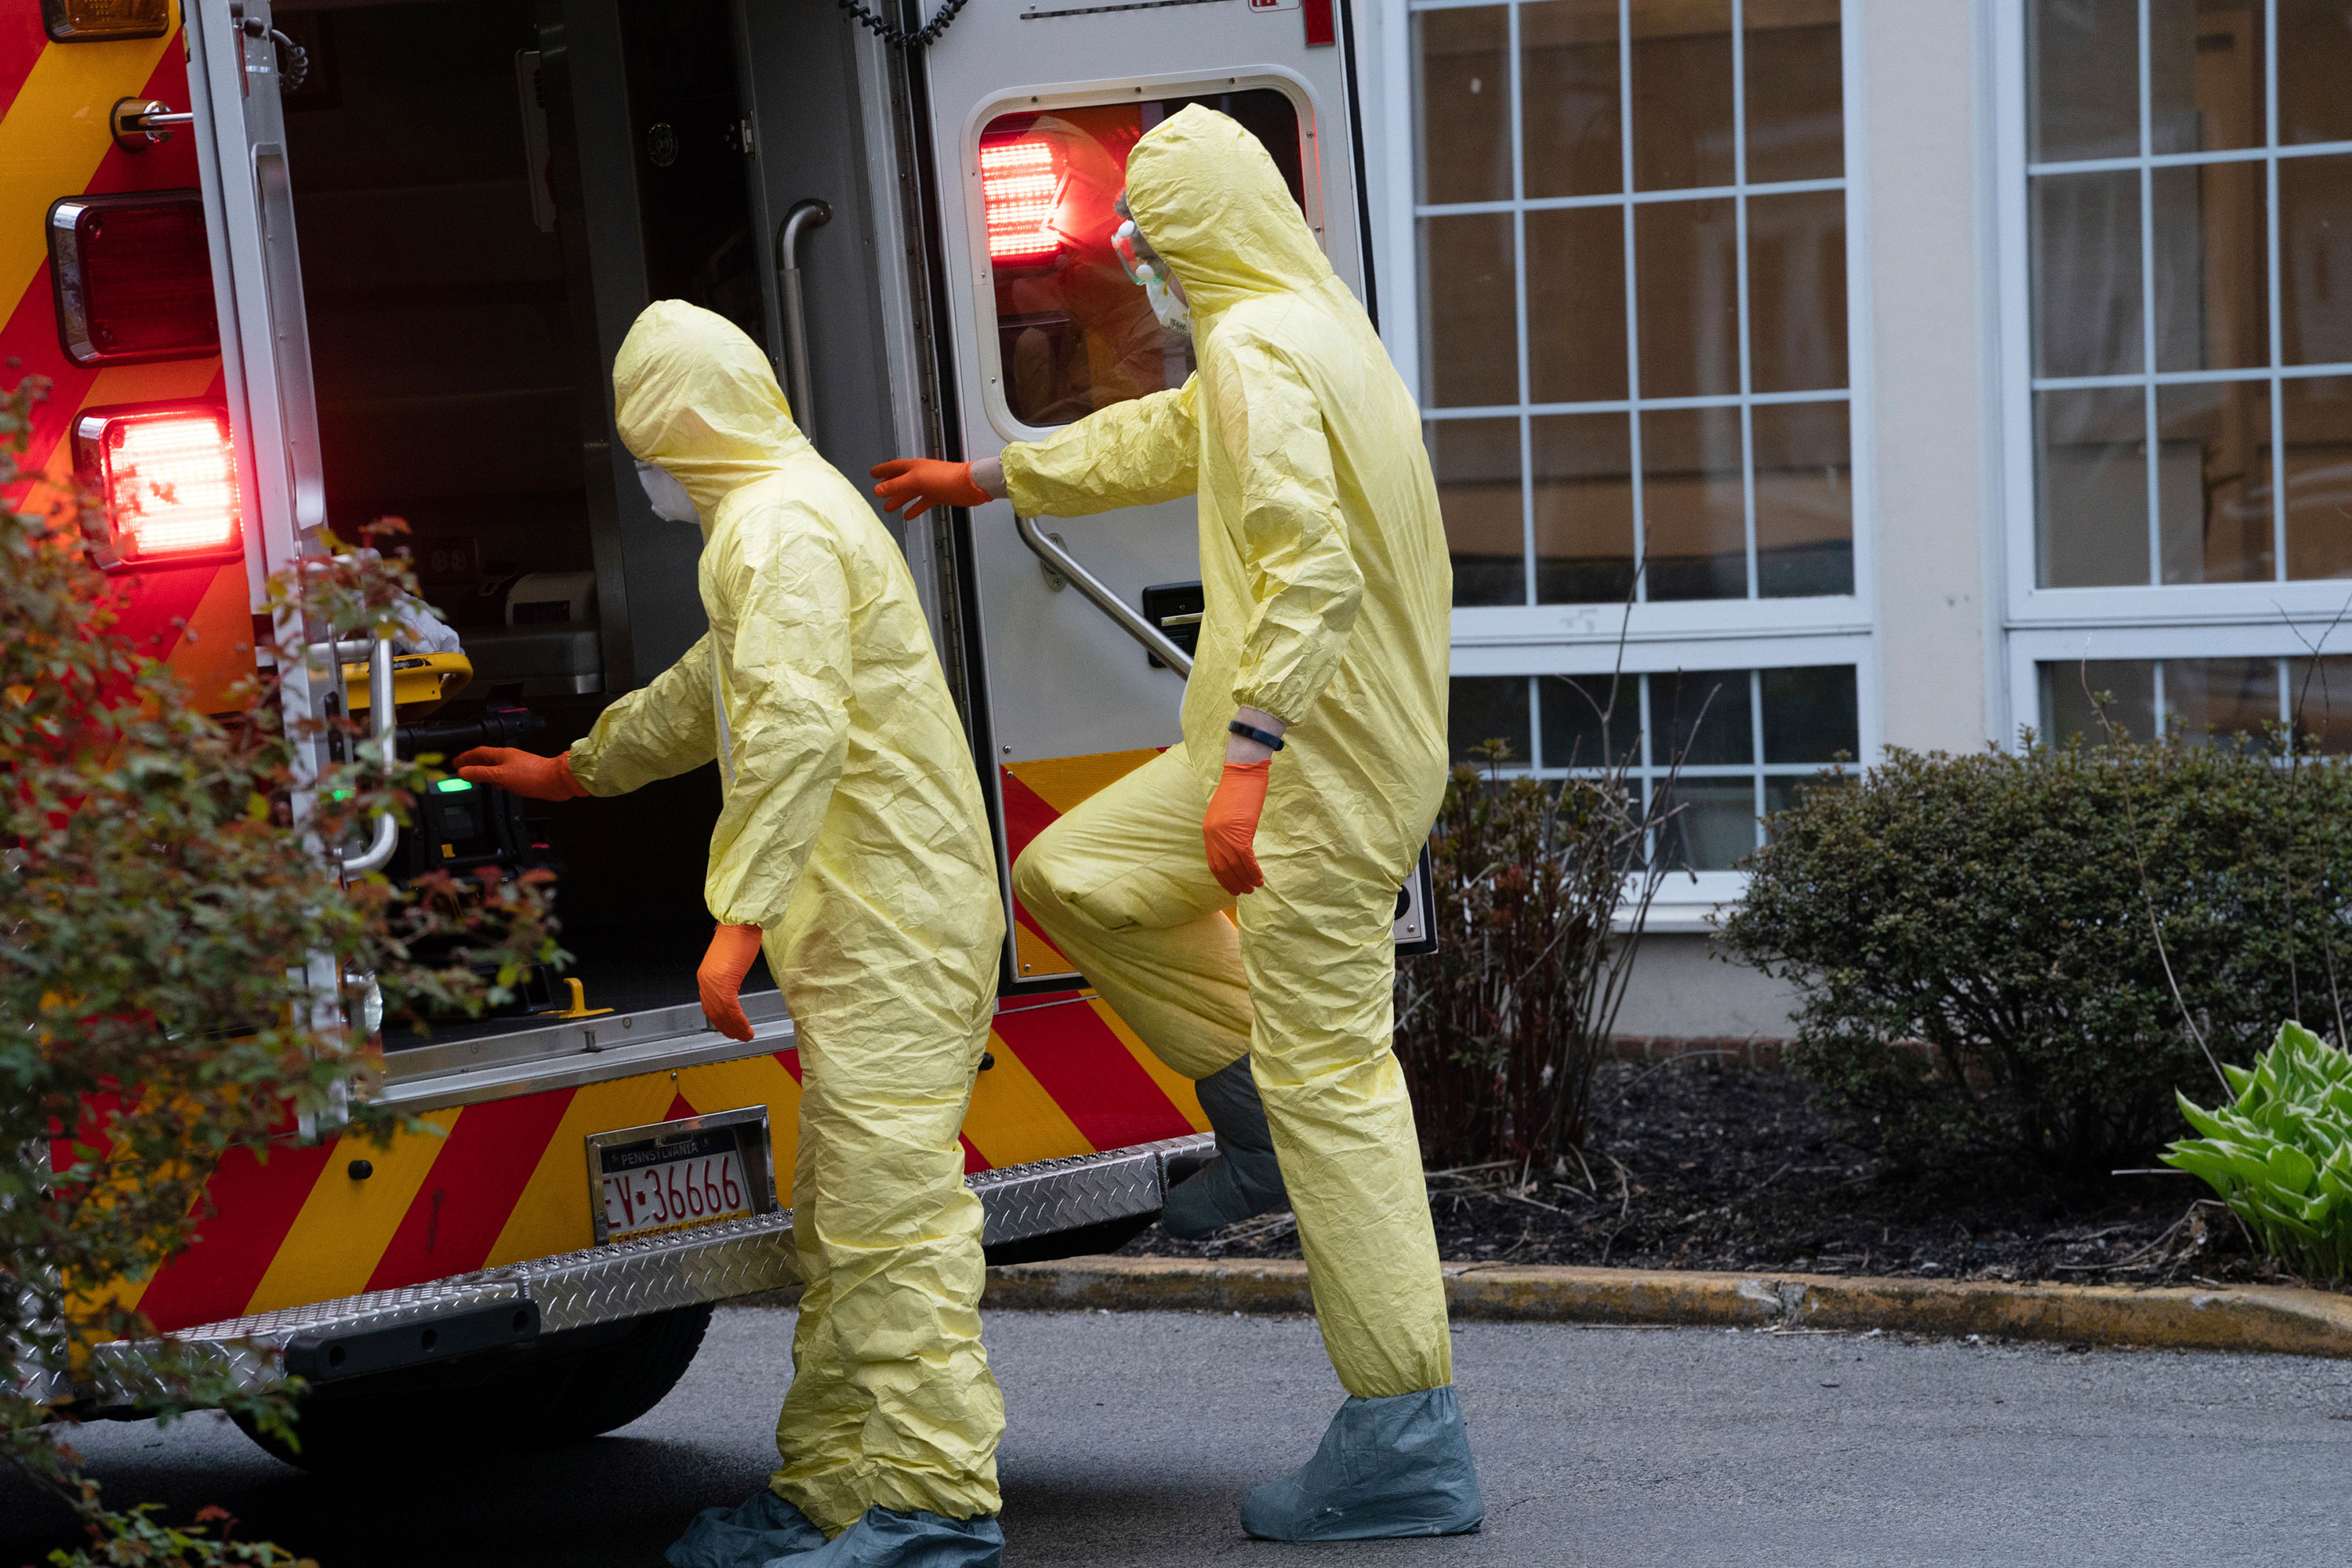 Paramedix full personal protective equipment (PPE) during a call at a nursing home in Bryn Mawr, Pa. The company responds to 911 calls across five towns that straddle Montgomery and Delaware Counties: Lower Merion, Narberth, Haverford, Conshohocken, and West Conshohocken. (Jessica Griffin/The Philadelphia Inquirer via AP)